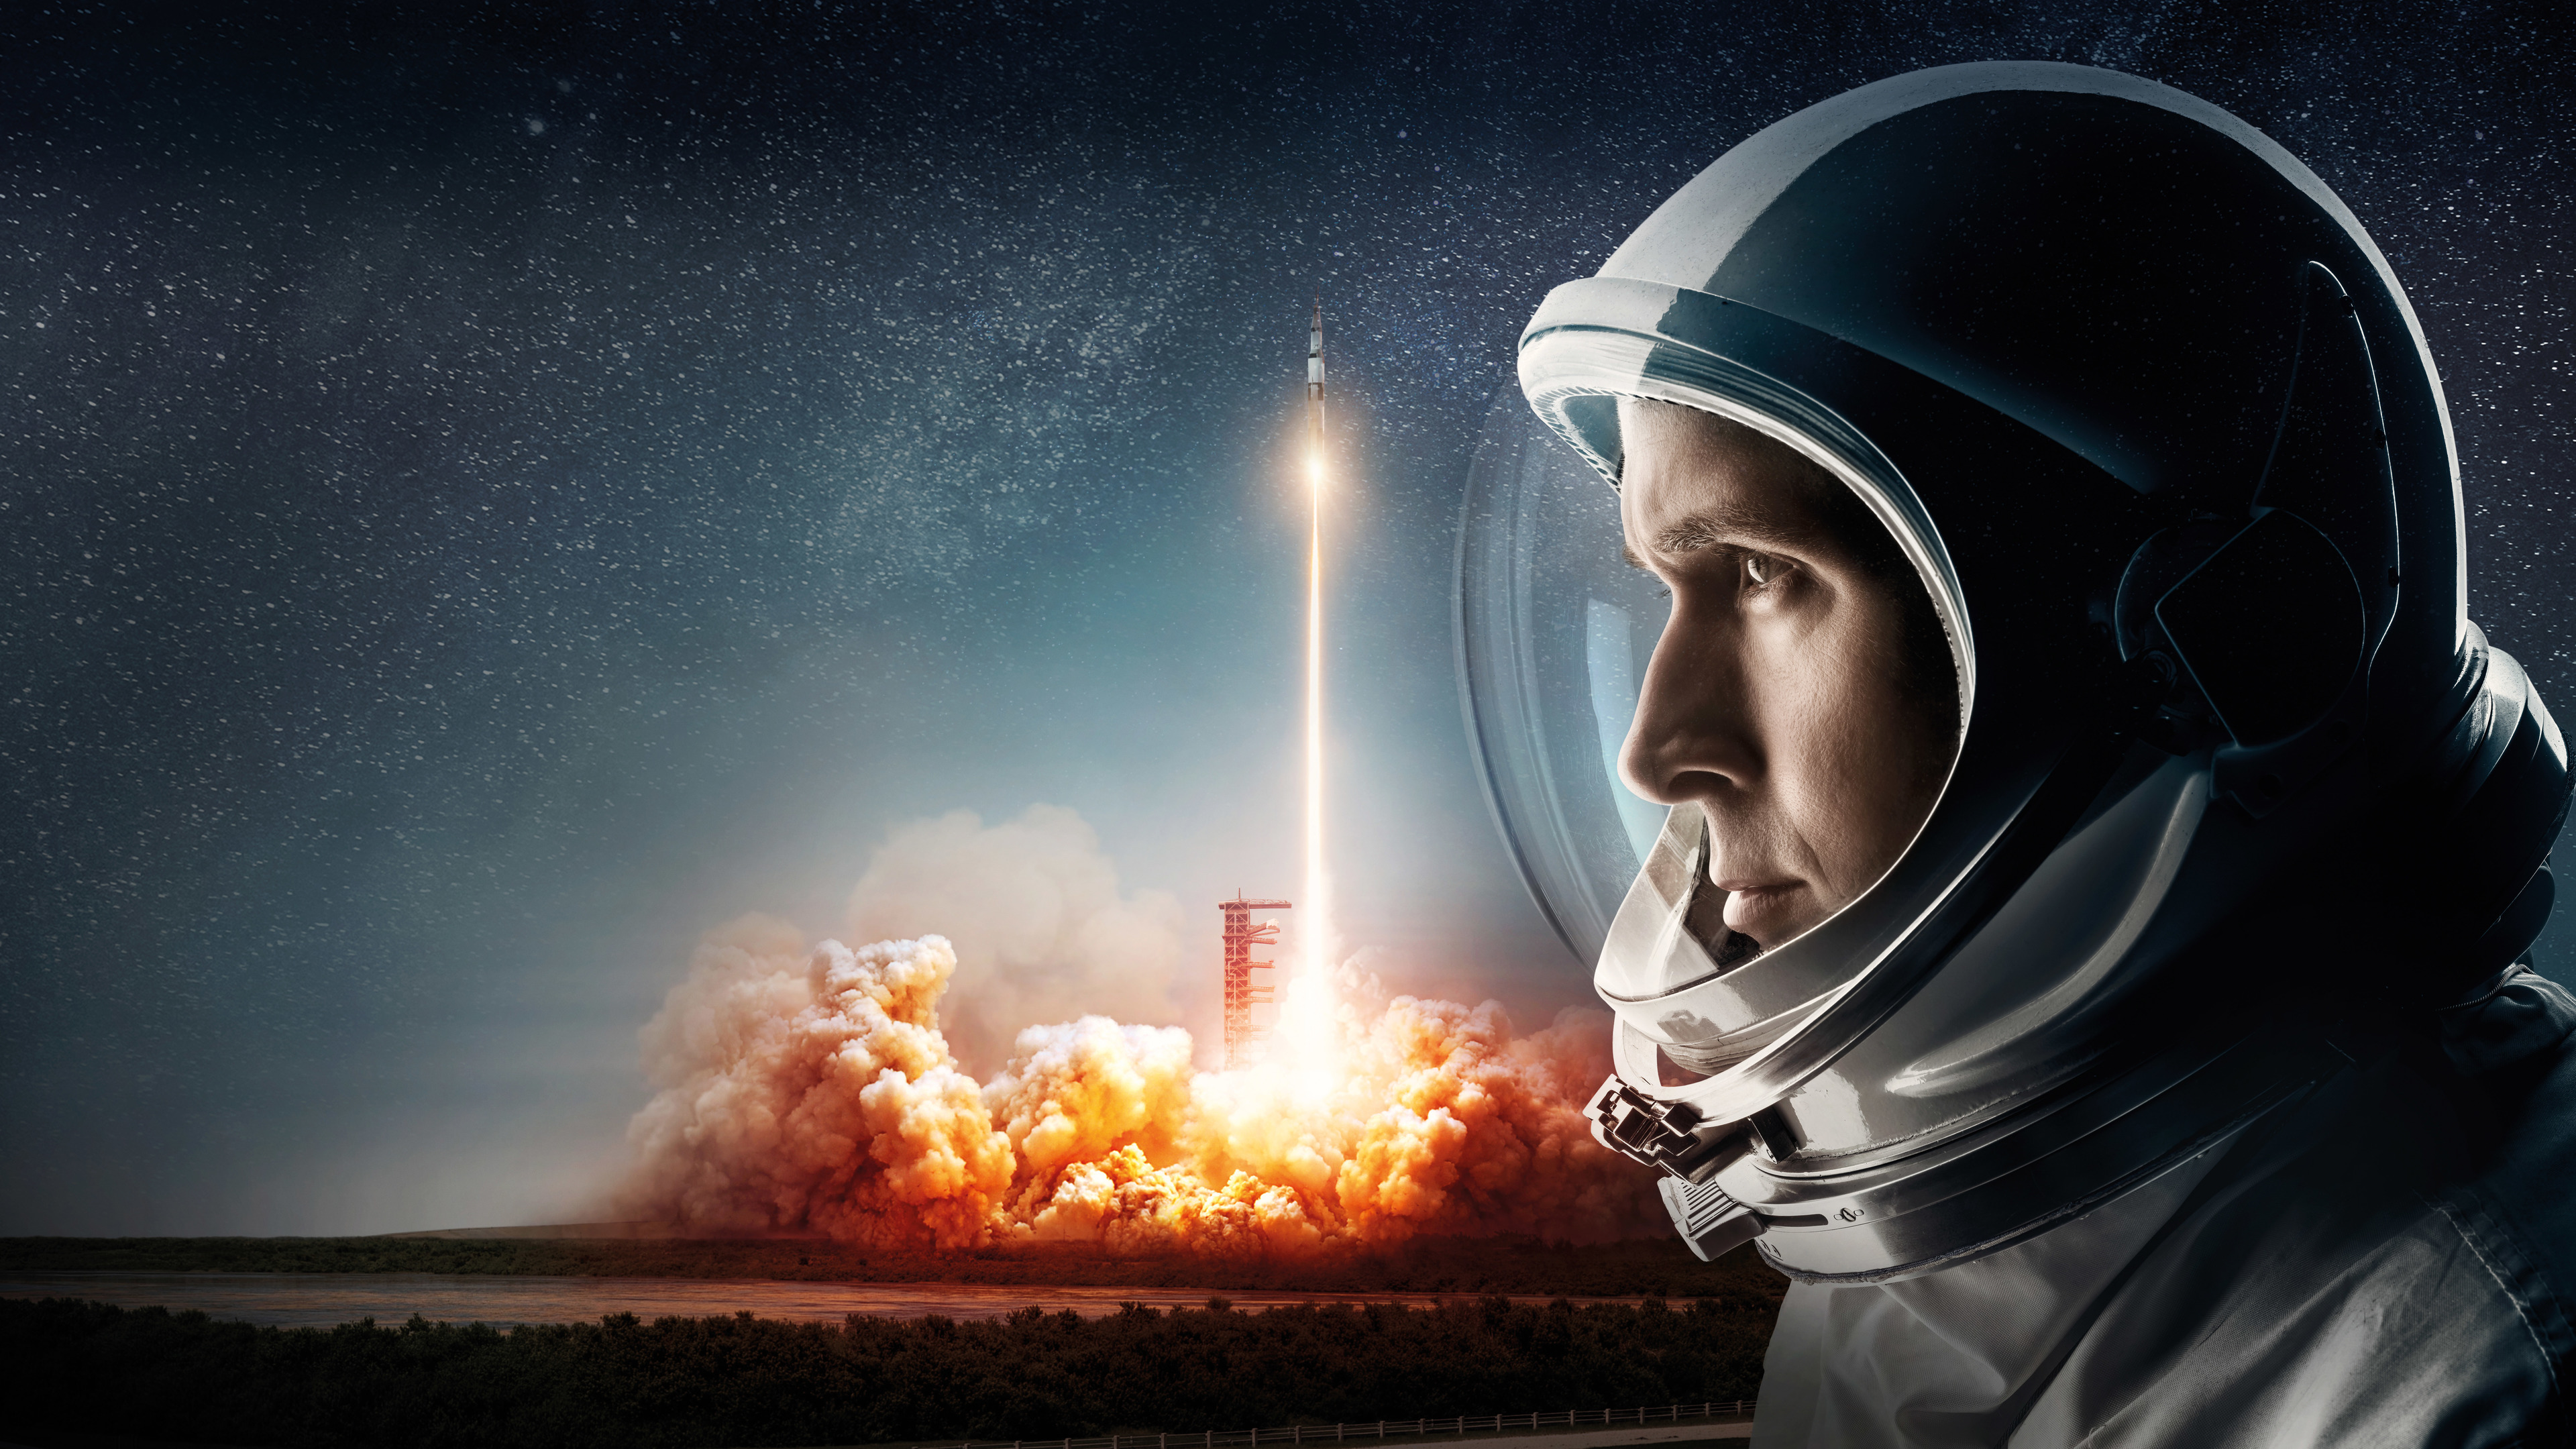 first man movie 2018 12k 1537644180 - First Man Movie 2018 12k - ryan gosling wallpapers, movies wallpapers, hd-wallpapers, first man wallpapers, 8k wallpapers, 5k wallpapers, 4k-wallpapers, 2018-movies-wallpapers, 12k wallpapers, 10k wallpapers